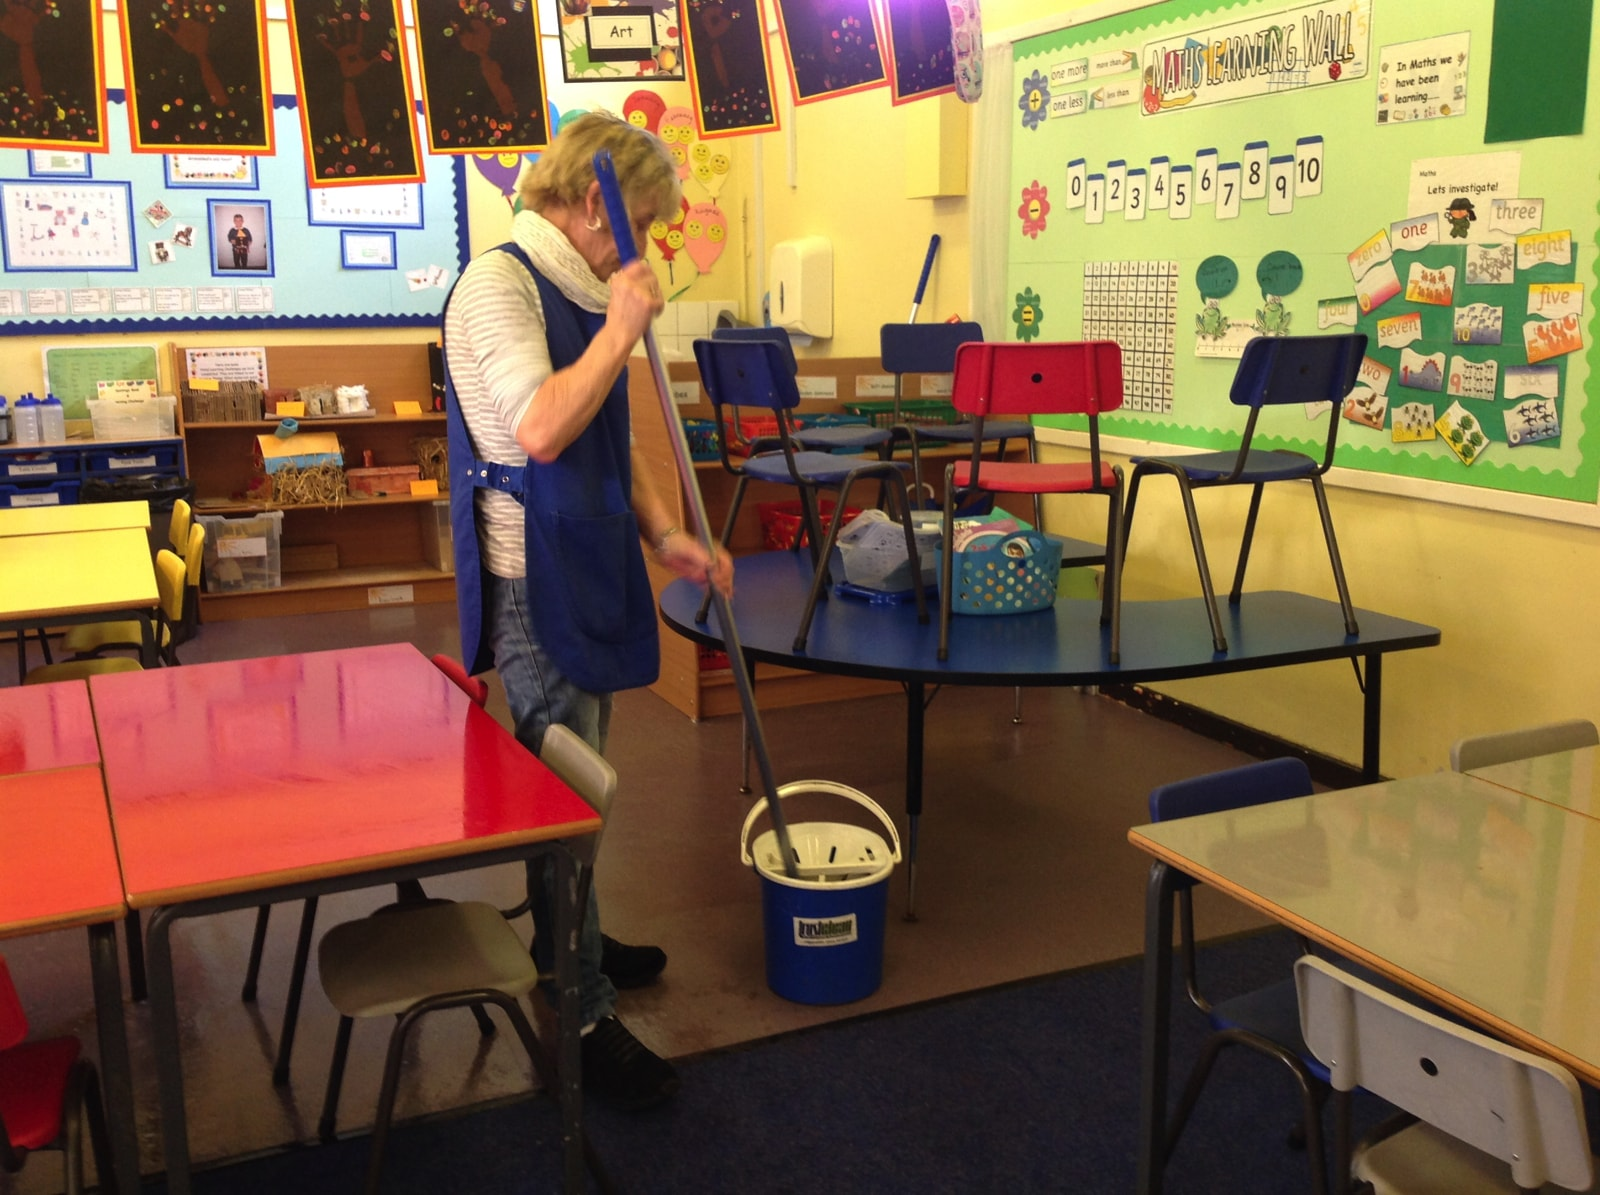 trustclean_contract_cleaning_school_28